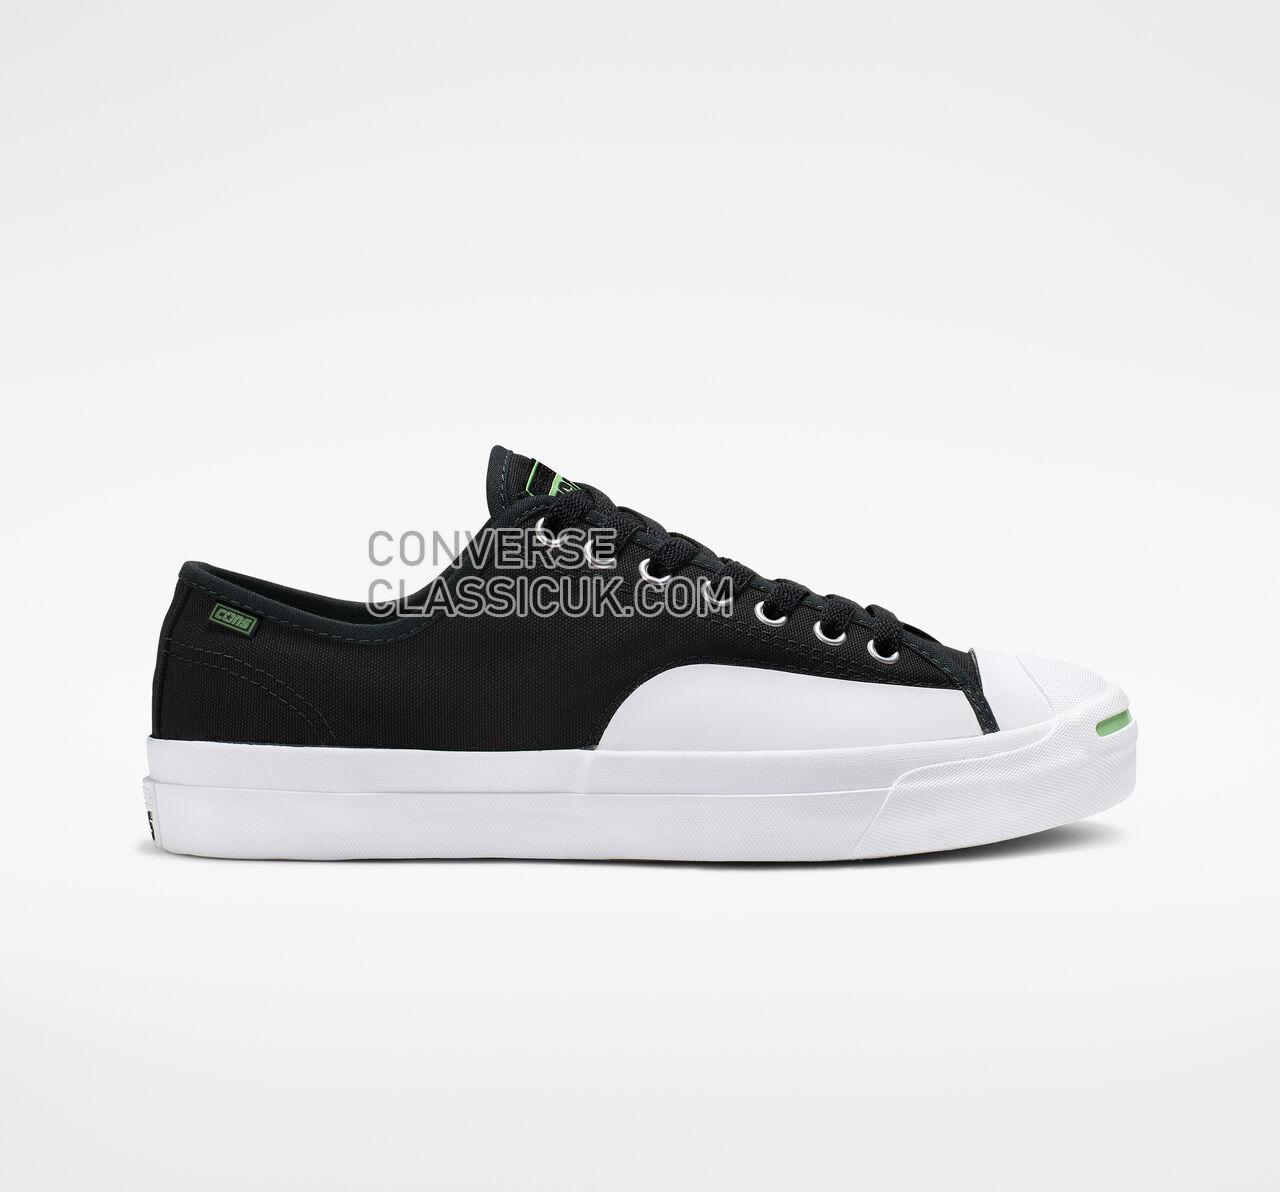 Converse CONS Jack Purcell Pro Rubber Ollie Patch Low Top Mens Womens Unisex 164161C Black/Acid Green/White Shoes